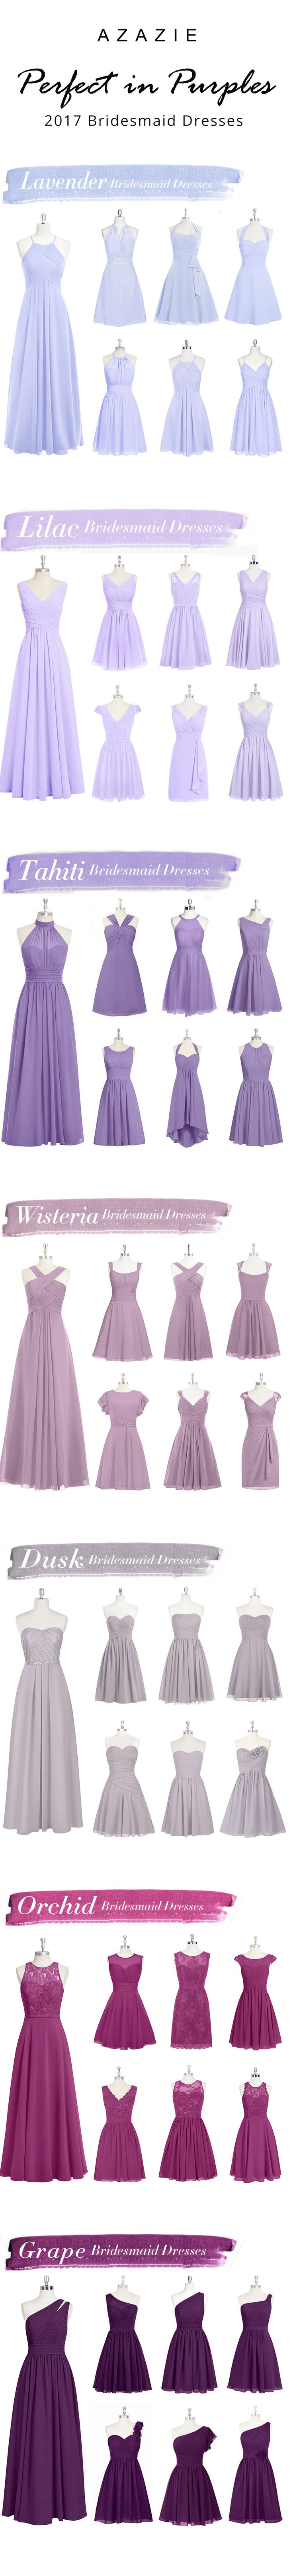 Mixing-and-matching your bridesmaids is easy! Azazie offers 50+ colors to choose from. We offer color swatches to make mixing & matching easier. Wedding tip: Try out our sample program before you purchase to make sure you are completely in love with a dress! Azazie has over 100 styles from delicate lace to bold satins. Shop our affordable bridesmaid dresses today!